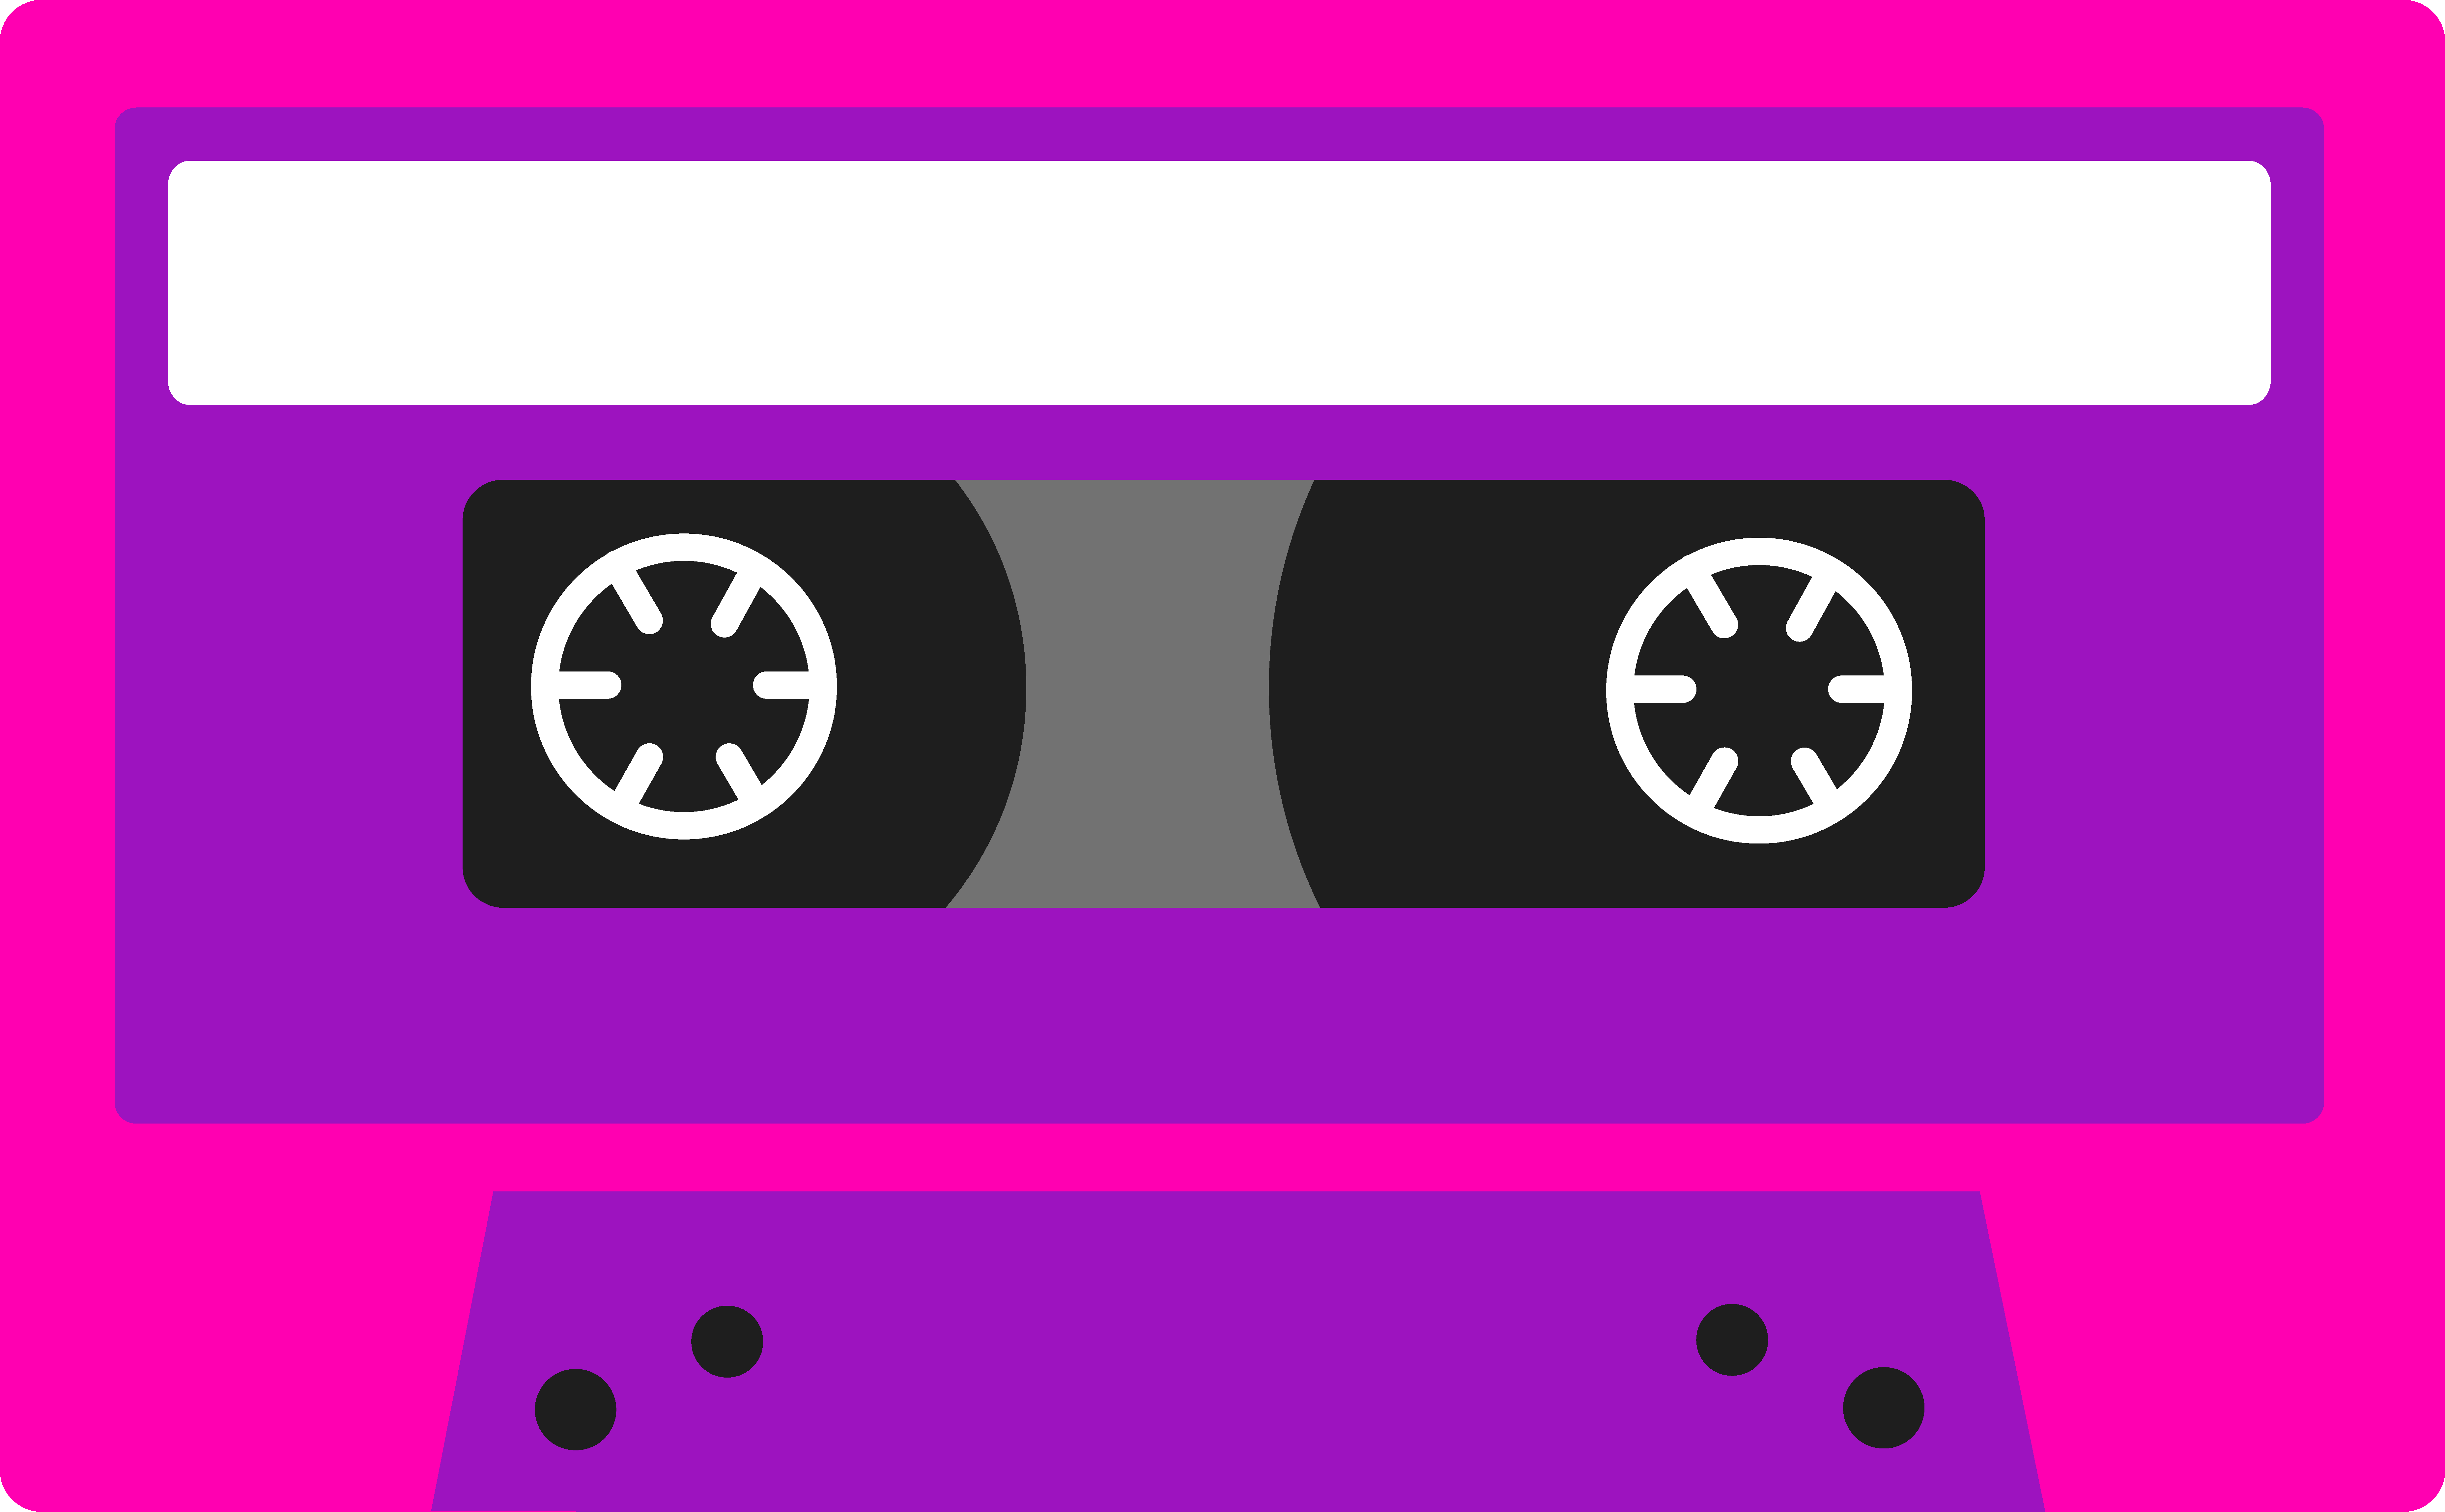 80s Graphics Clip Art Pink And Purple Cassette Tape Free Clip Art Cassette Tapes Free Clip Art 80s Theme Party